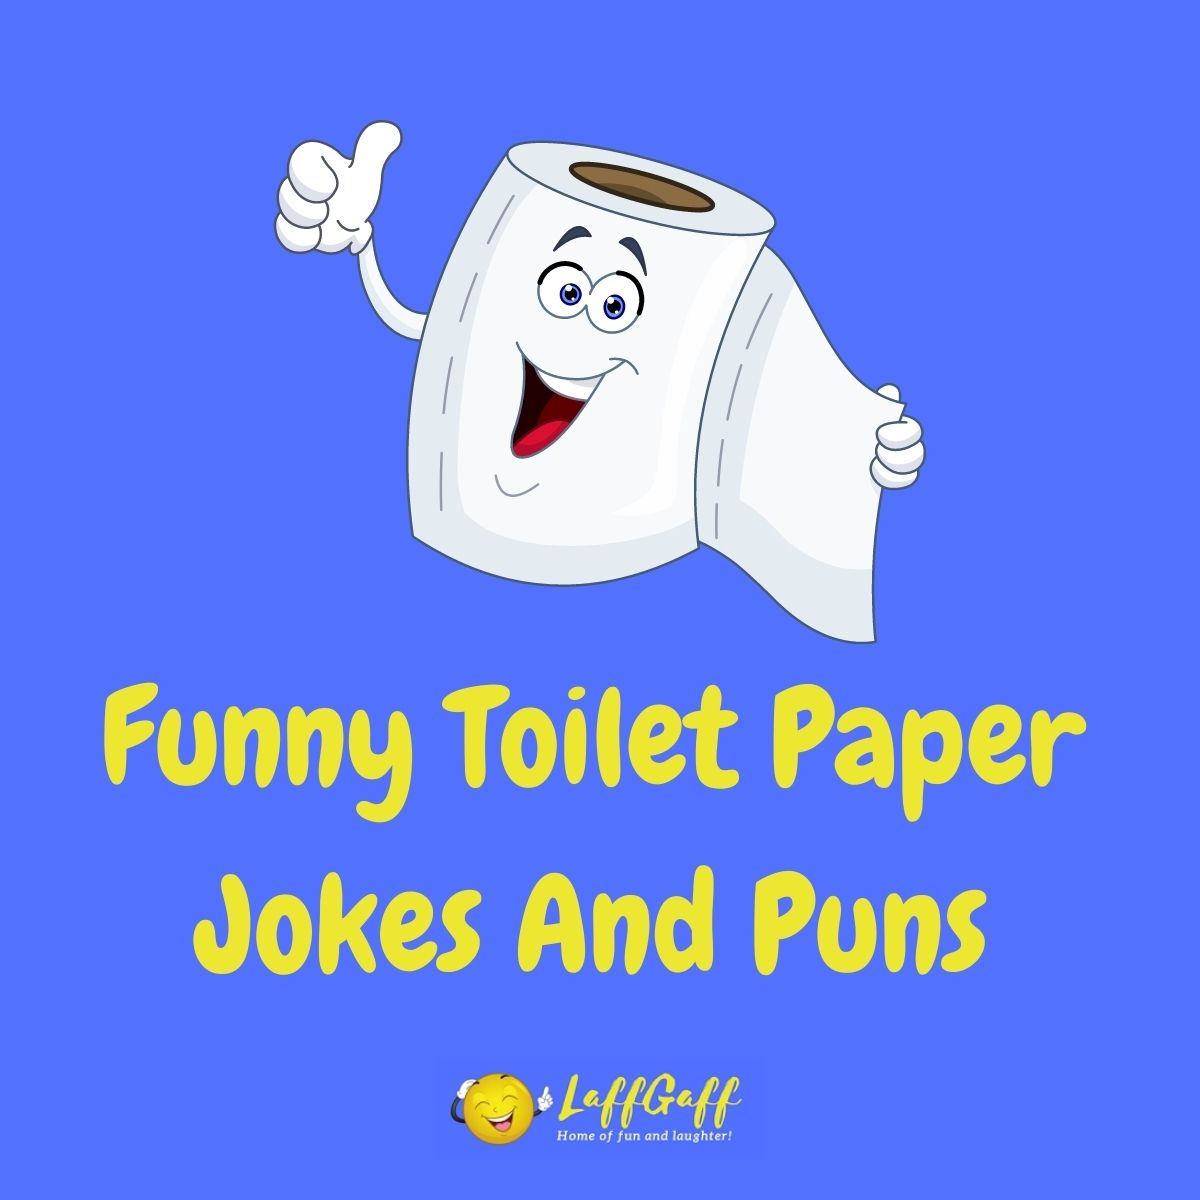 Featured image for a page of funny toilet paper jokes and puns.